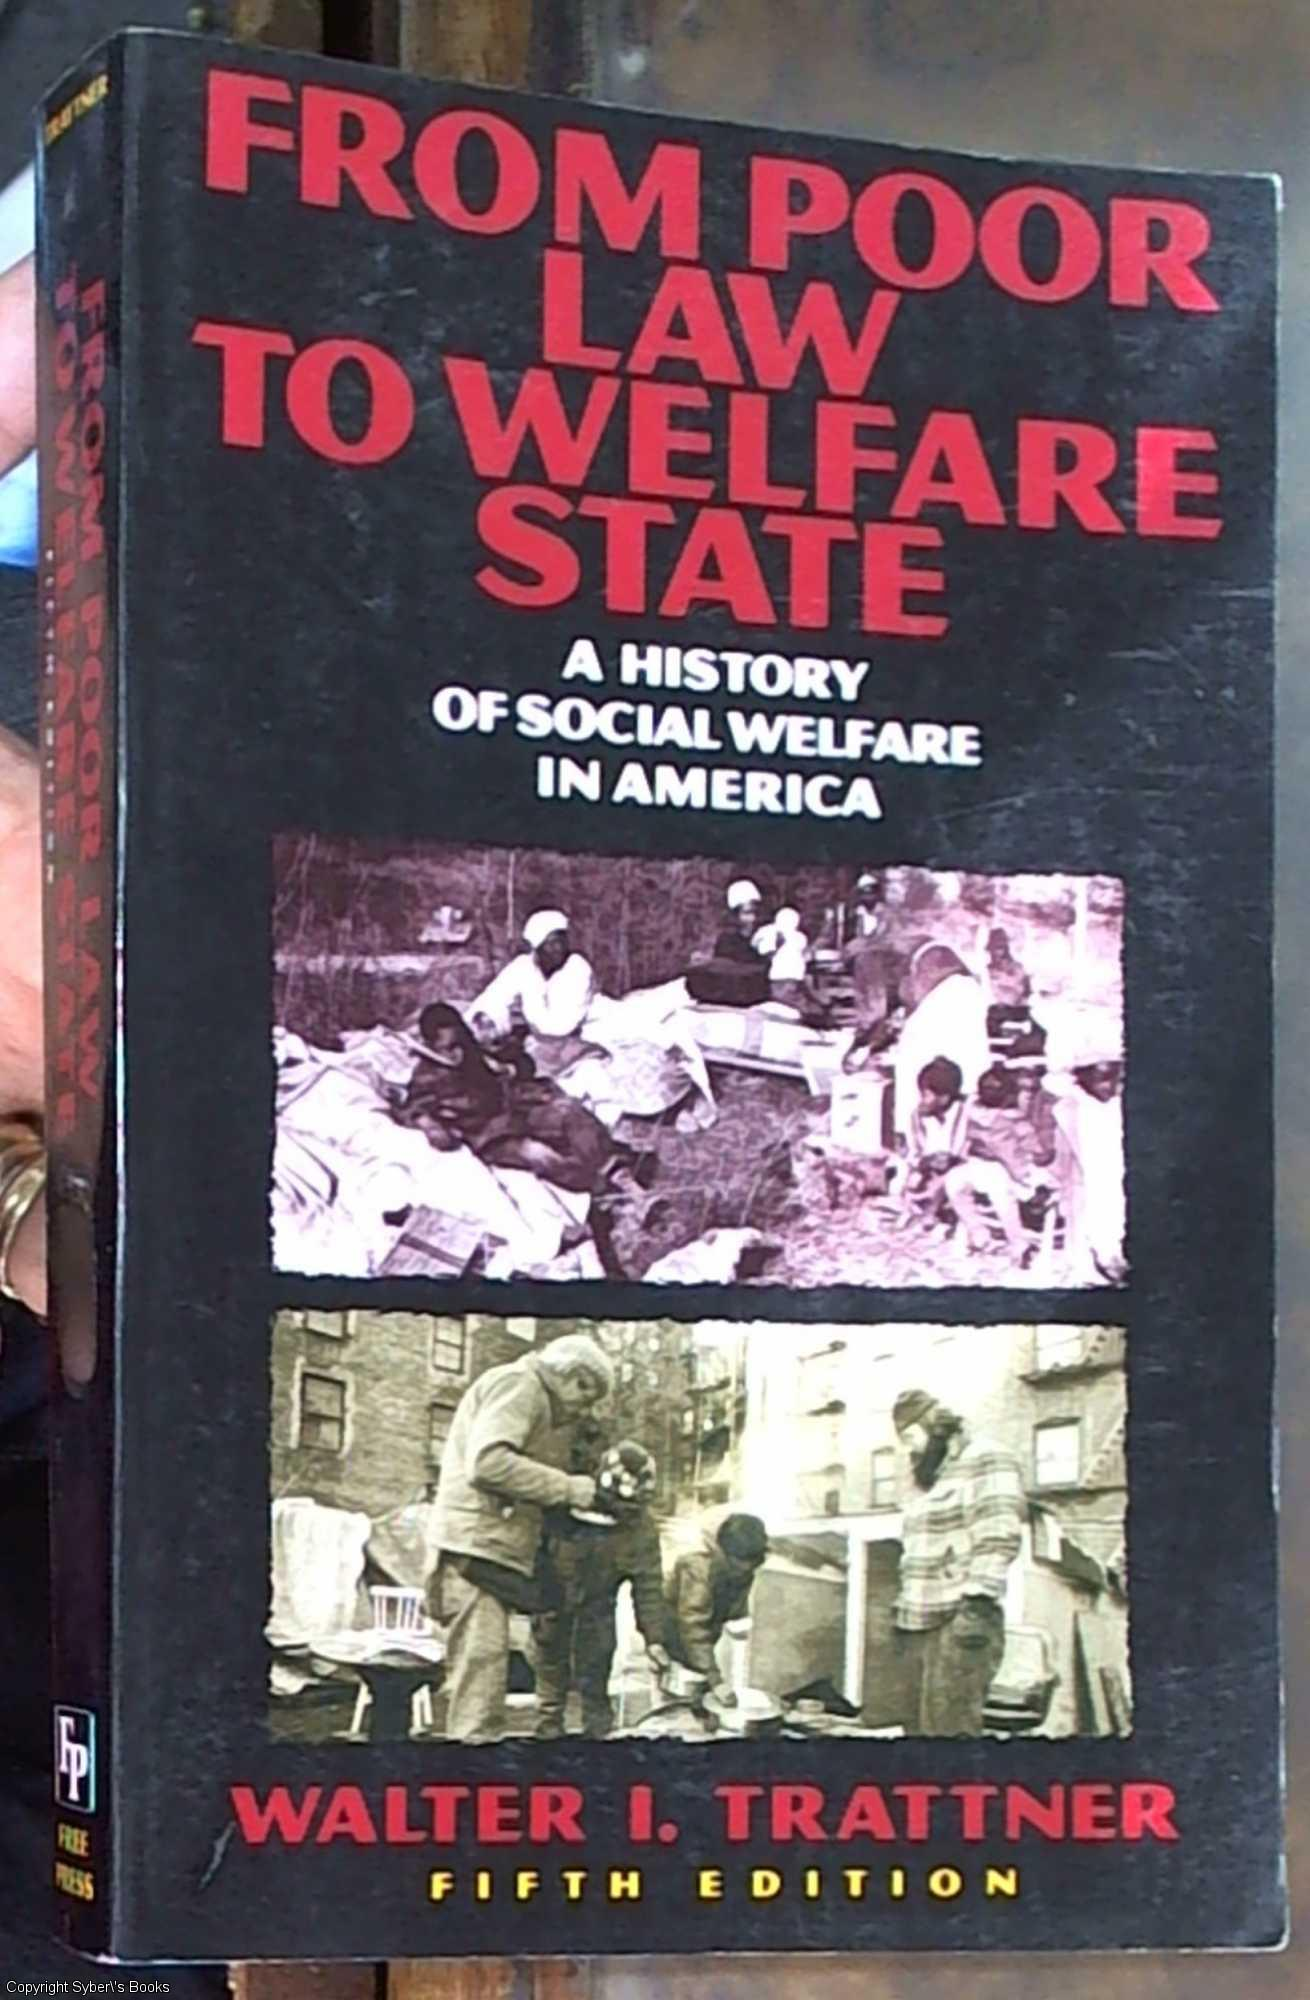 an analysis of the social welfare in america The us social welfare structure has been shaped both by long standing traditions and by changing economic and social conditions.